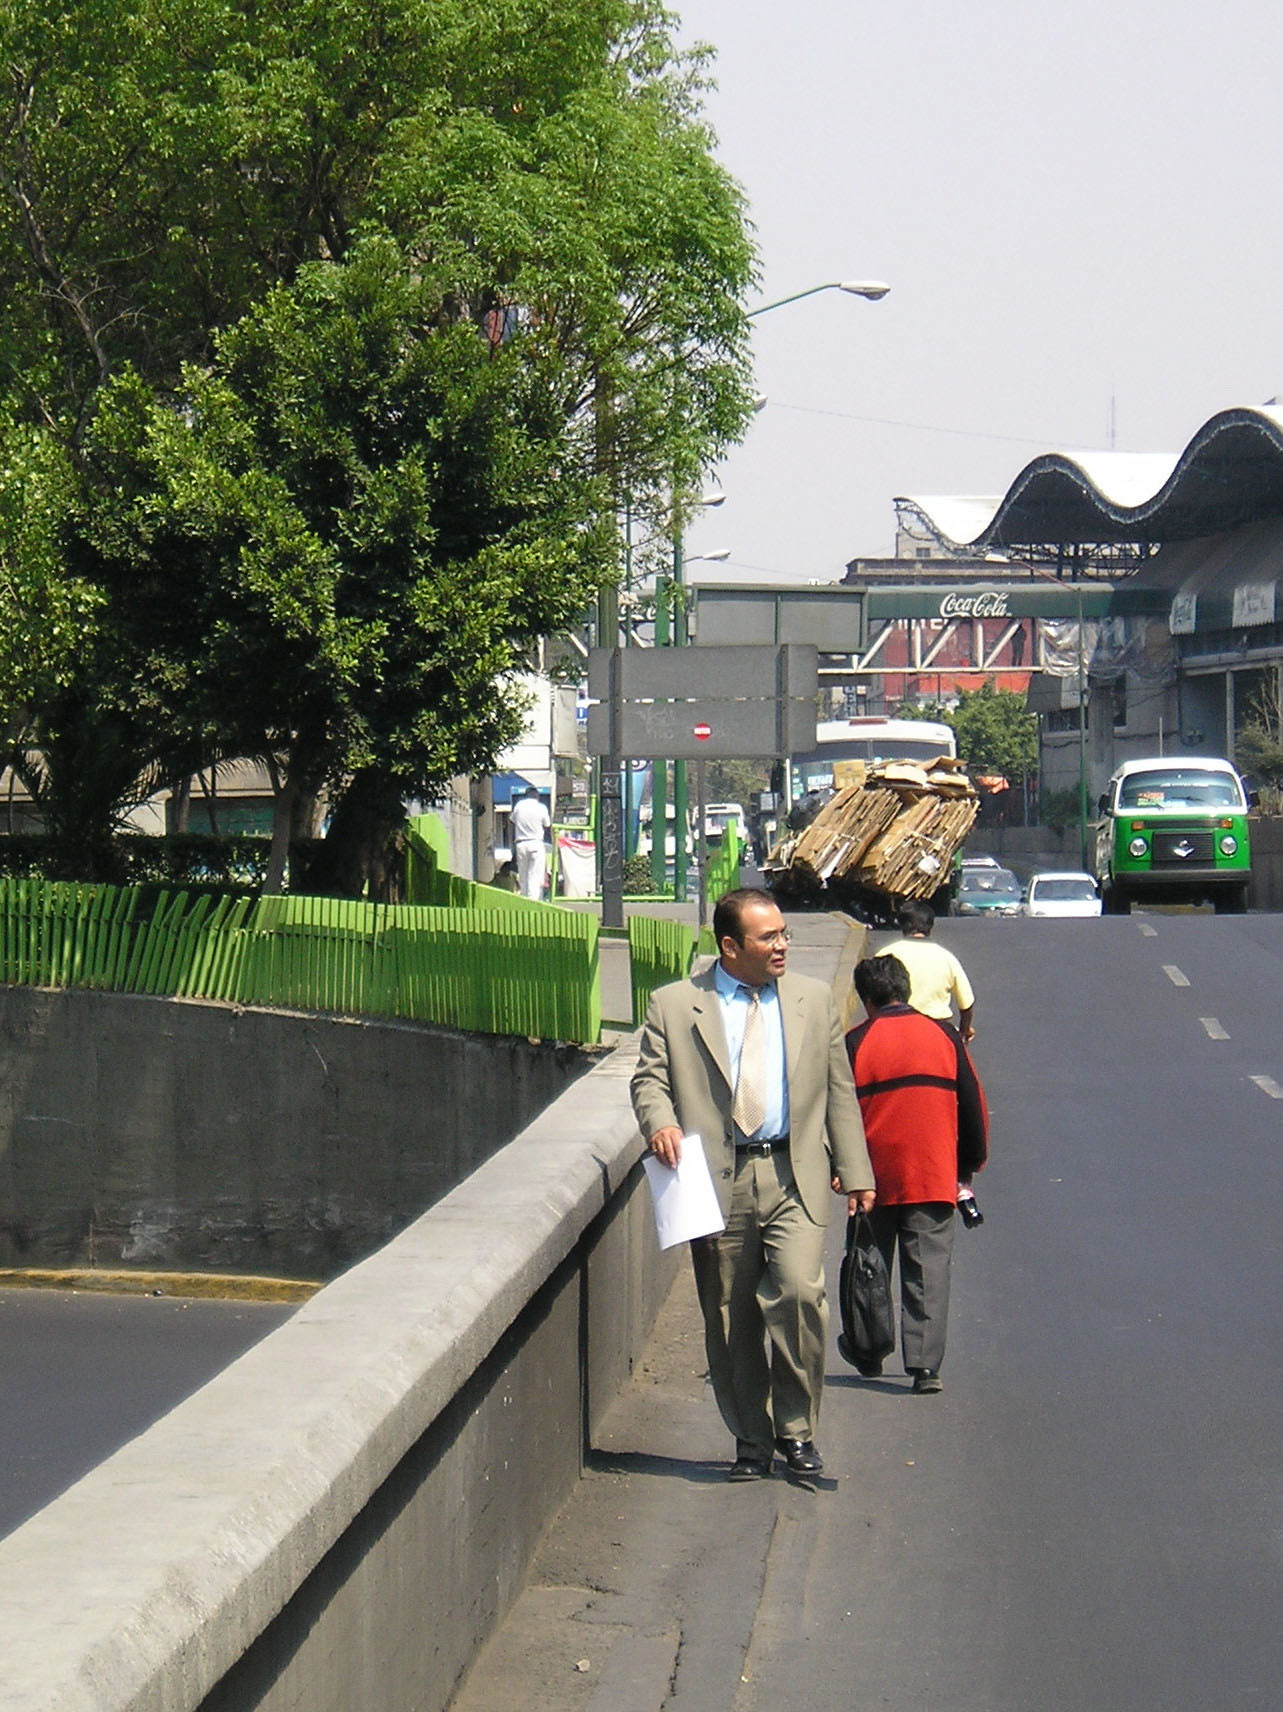 Fig. 29.5 Pedestrian conditions connecting Mexico City's metro system to nearby municipal offices are not pedestrian-friendly.